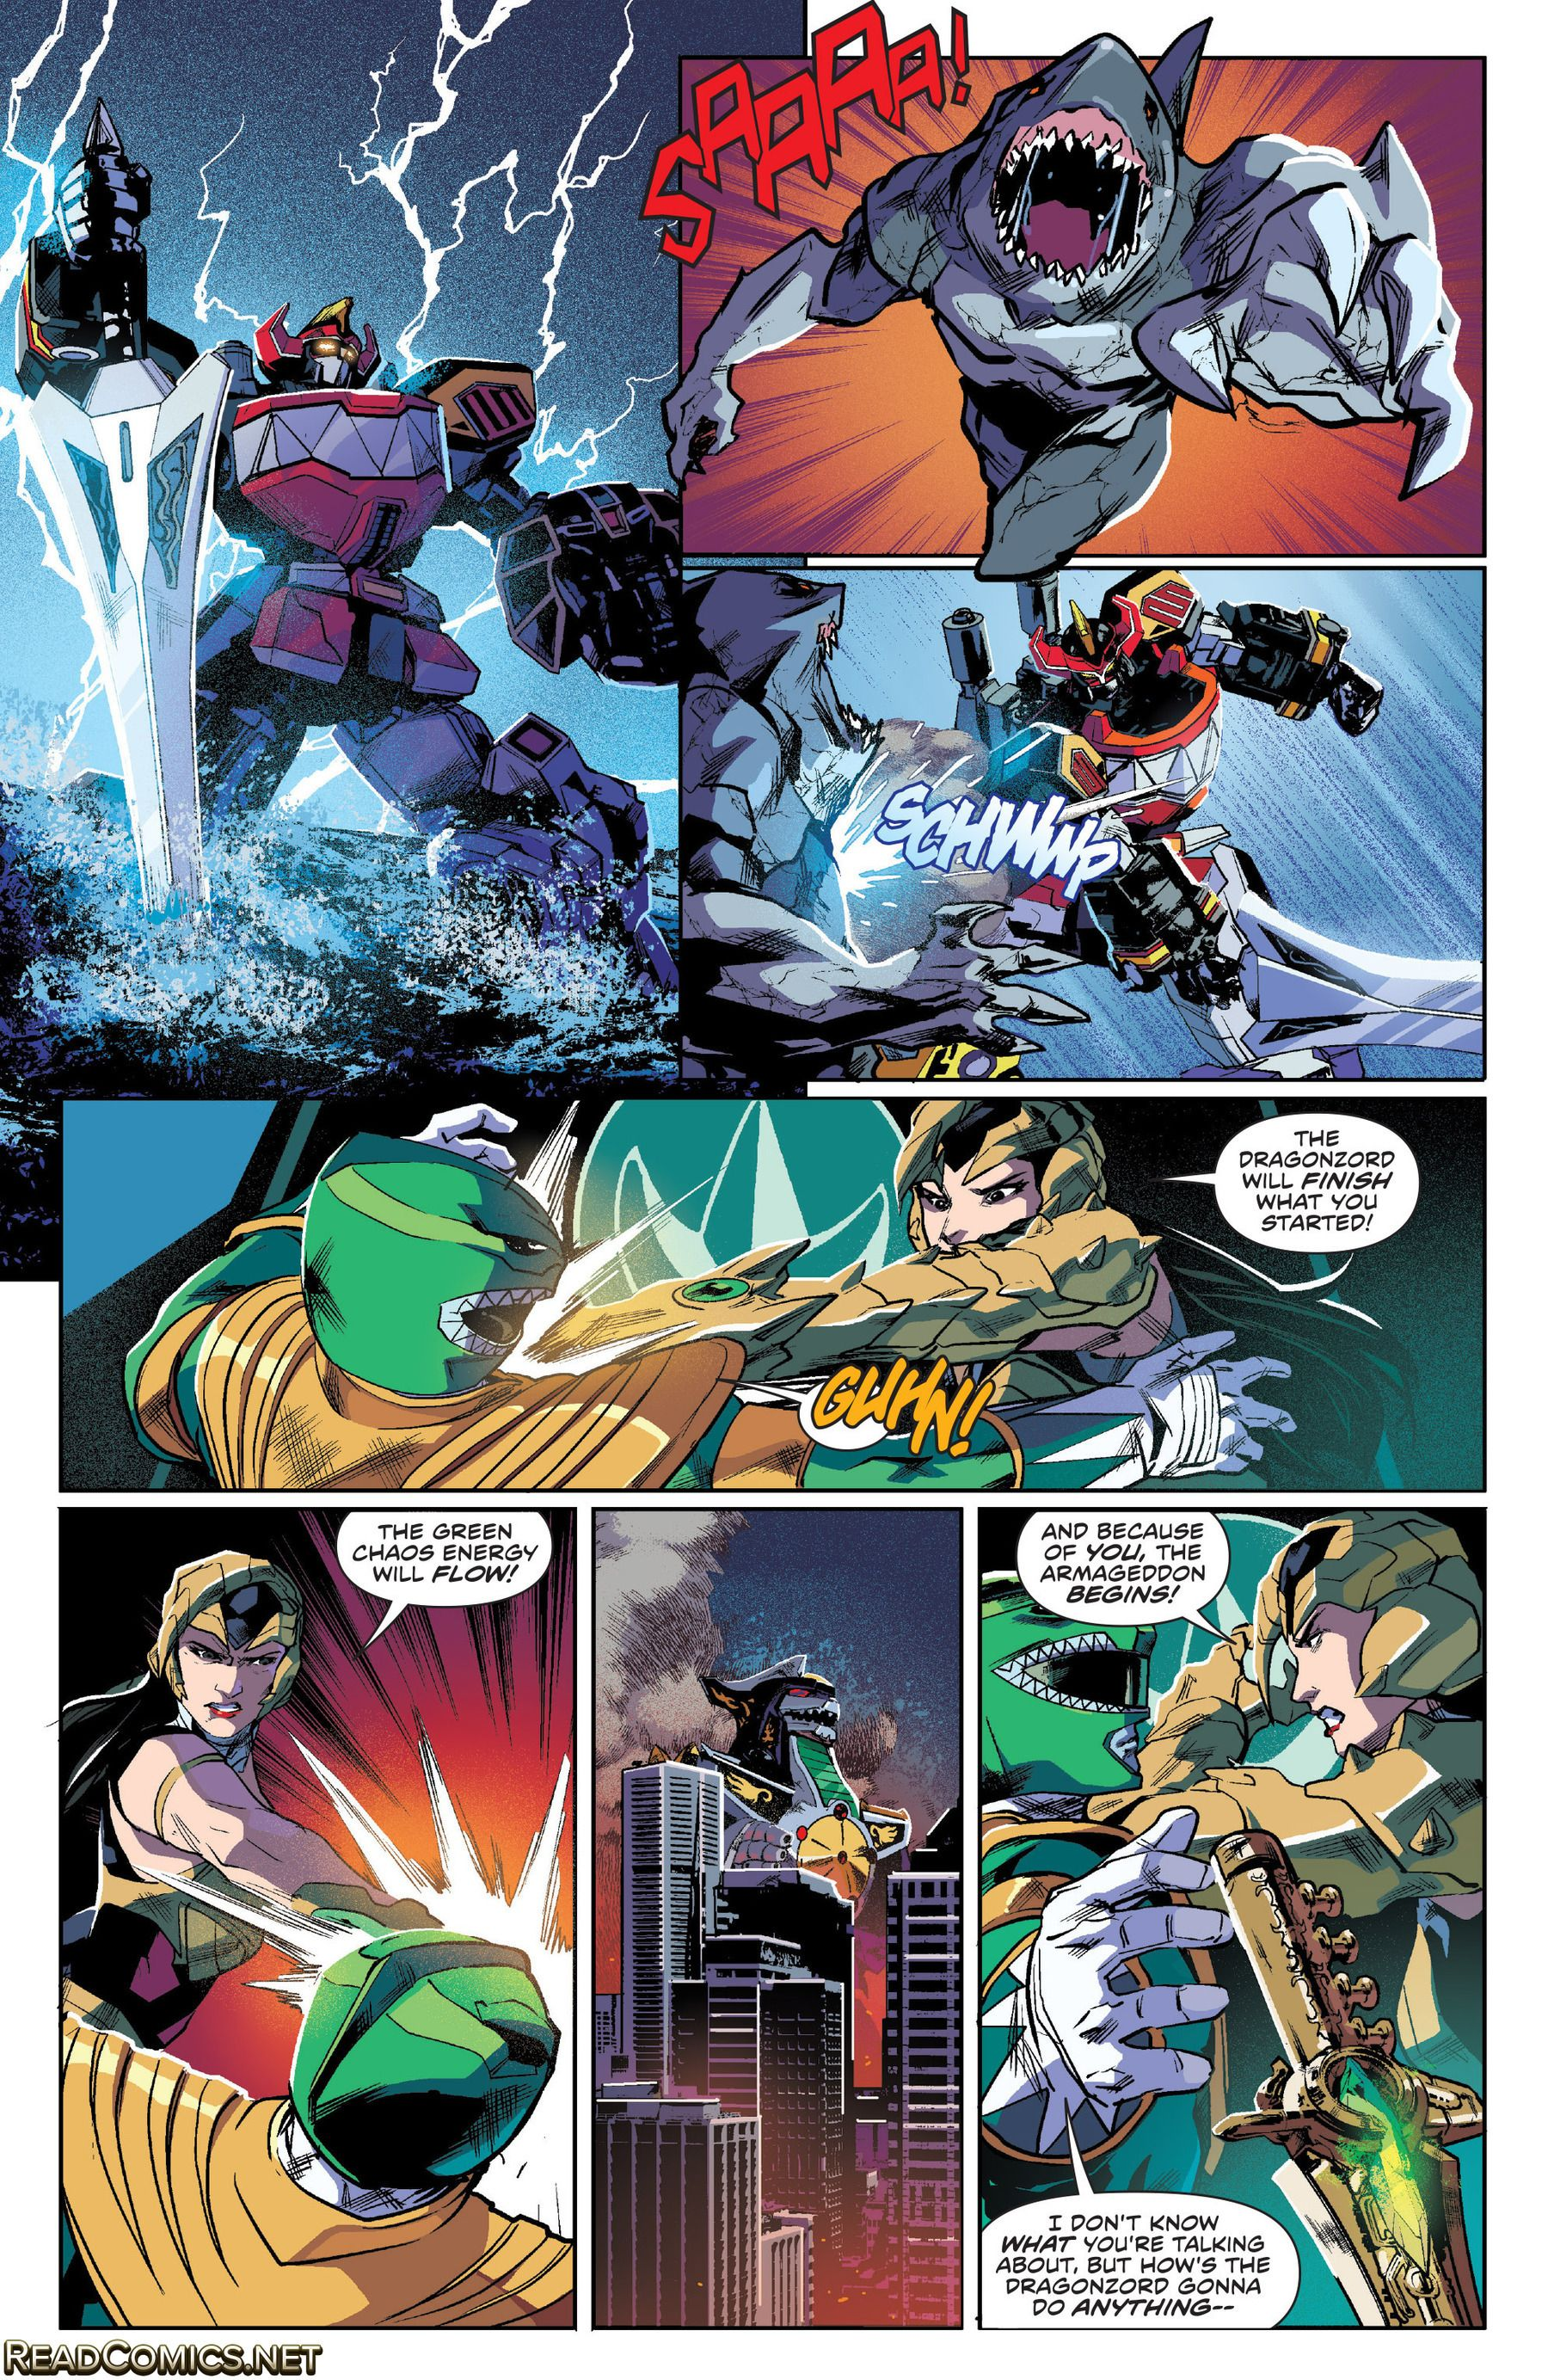 Po po power ranger pages to color - Mighty Morphin Power Rangers 2016 4 Page 15